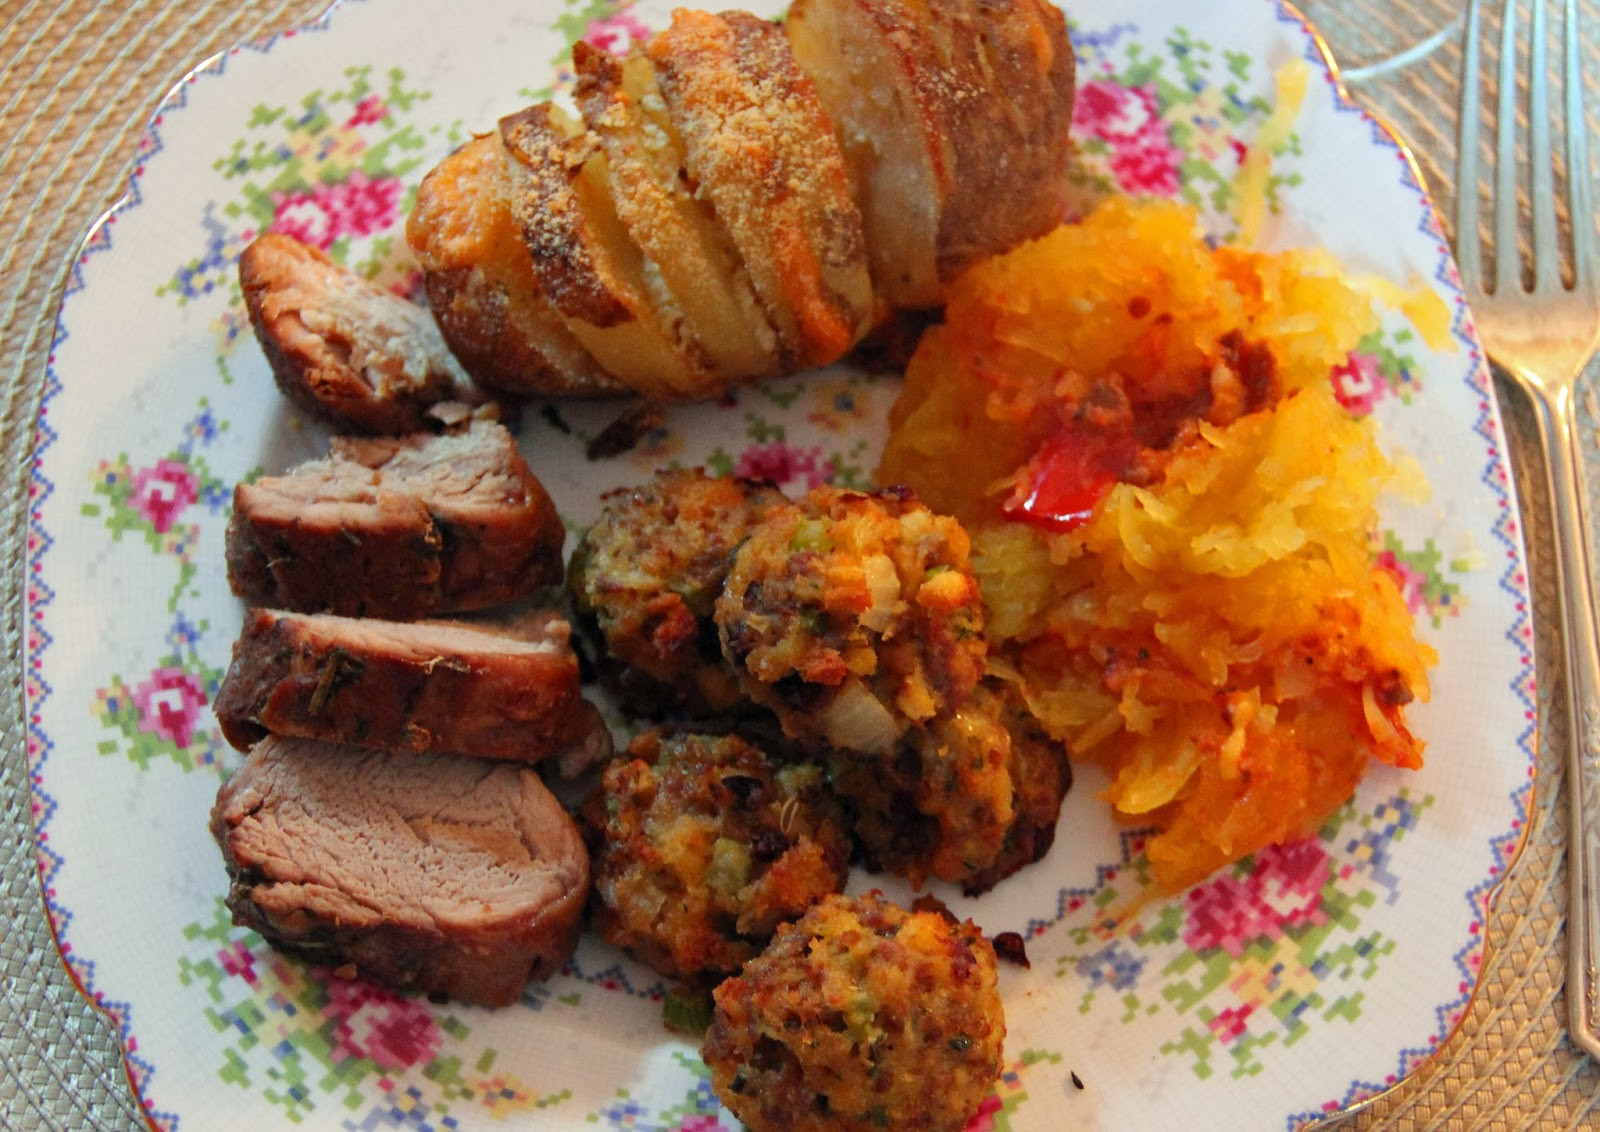 Pork Tenderloin Dinner  Jo and Sue Pork Tenderloin Dinner 4 recipes